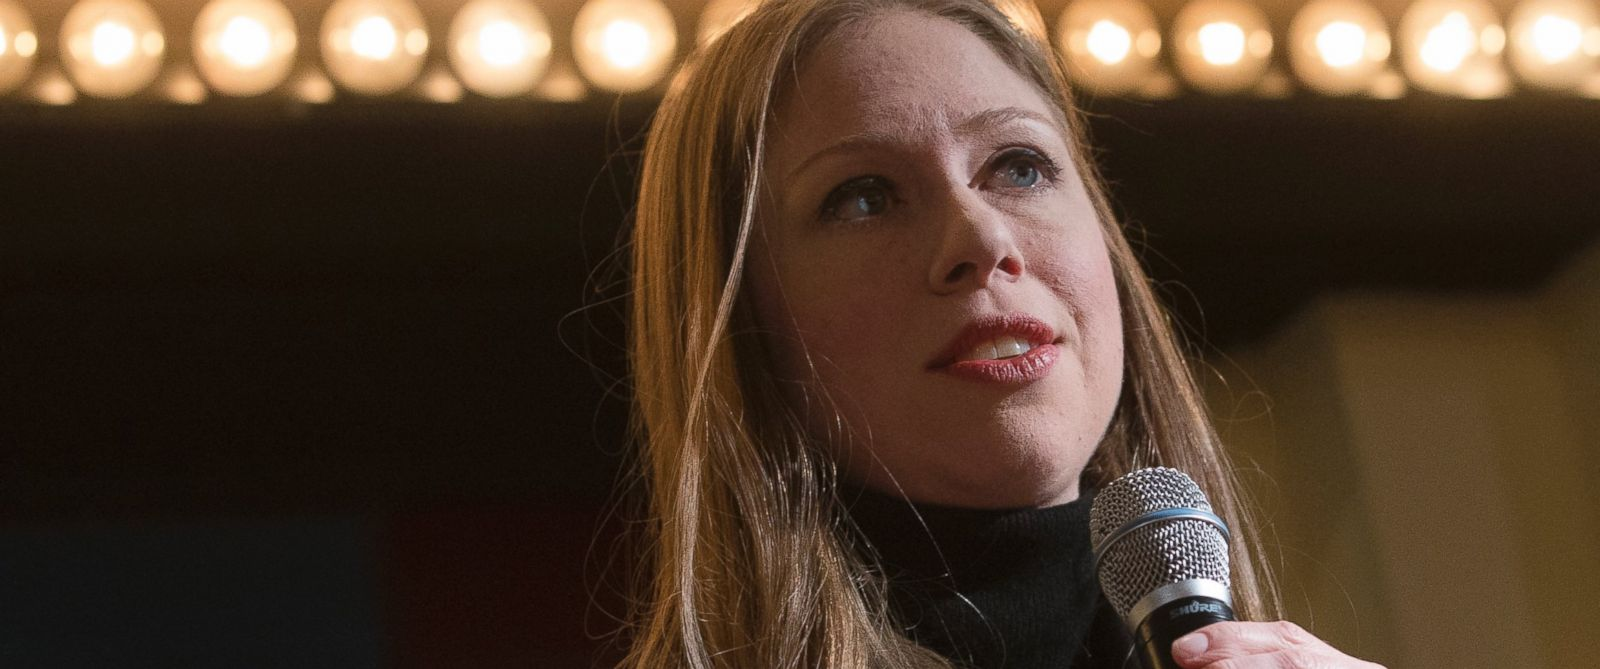 PHOTO: Chelsea Clinton, daughter of Democratic presidential candidate Hillary Clinton, speaks during a campaign stop for her mother, Jan. 12, 2016, at the Millyard Museum in Manchester, N.H.